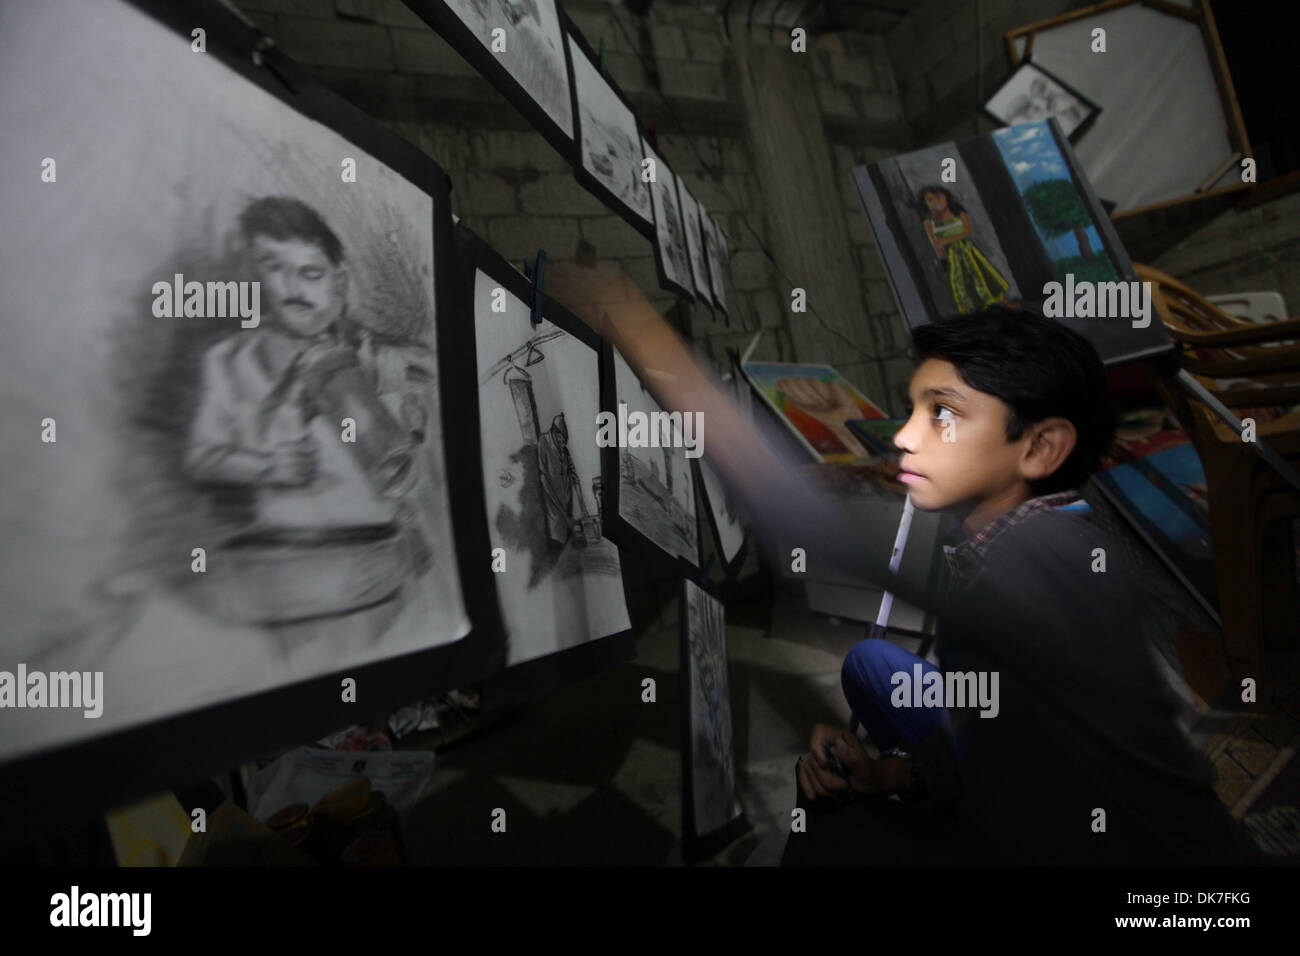 Dec. 3, 2013 - Gaza, Palestinian Territories - Mohammed Qraqia 12 years-old, A Palestinian boy draws paintings artwork at his bedroom in Shijaia neighborhood in the eastern of Gaza city, Mohammed draws since his childhood when his age was 5 years...Photo: Moemen Faiz/NurPhoto (Credit Image: © Moemen Faiz/NurPhoto/ZUMAPRESS.com) - Stock Image